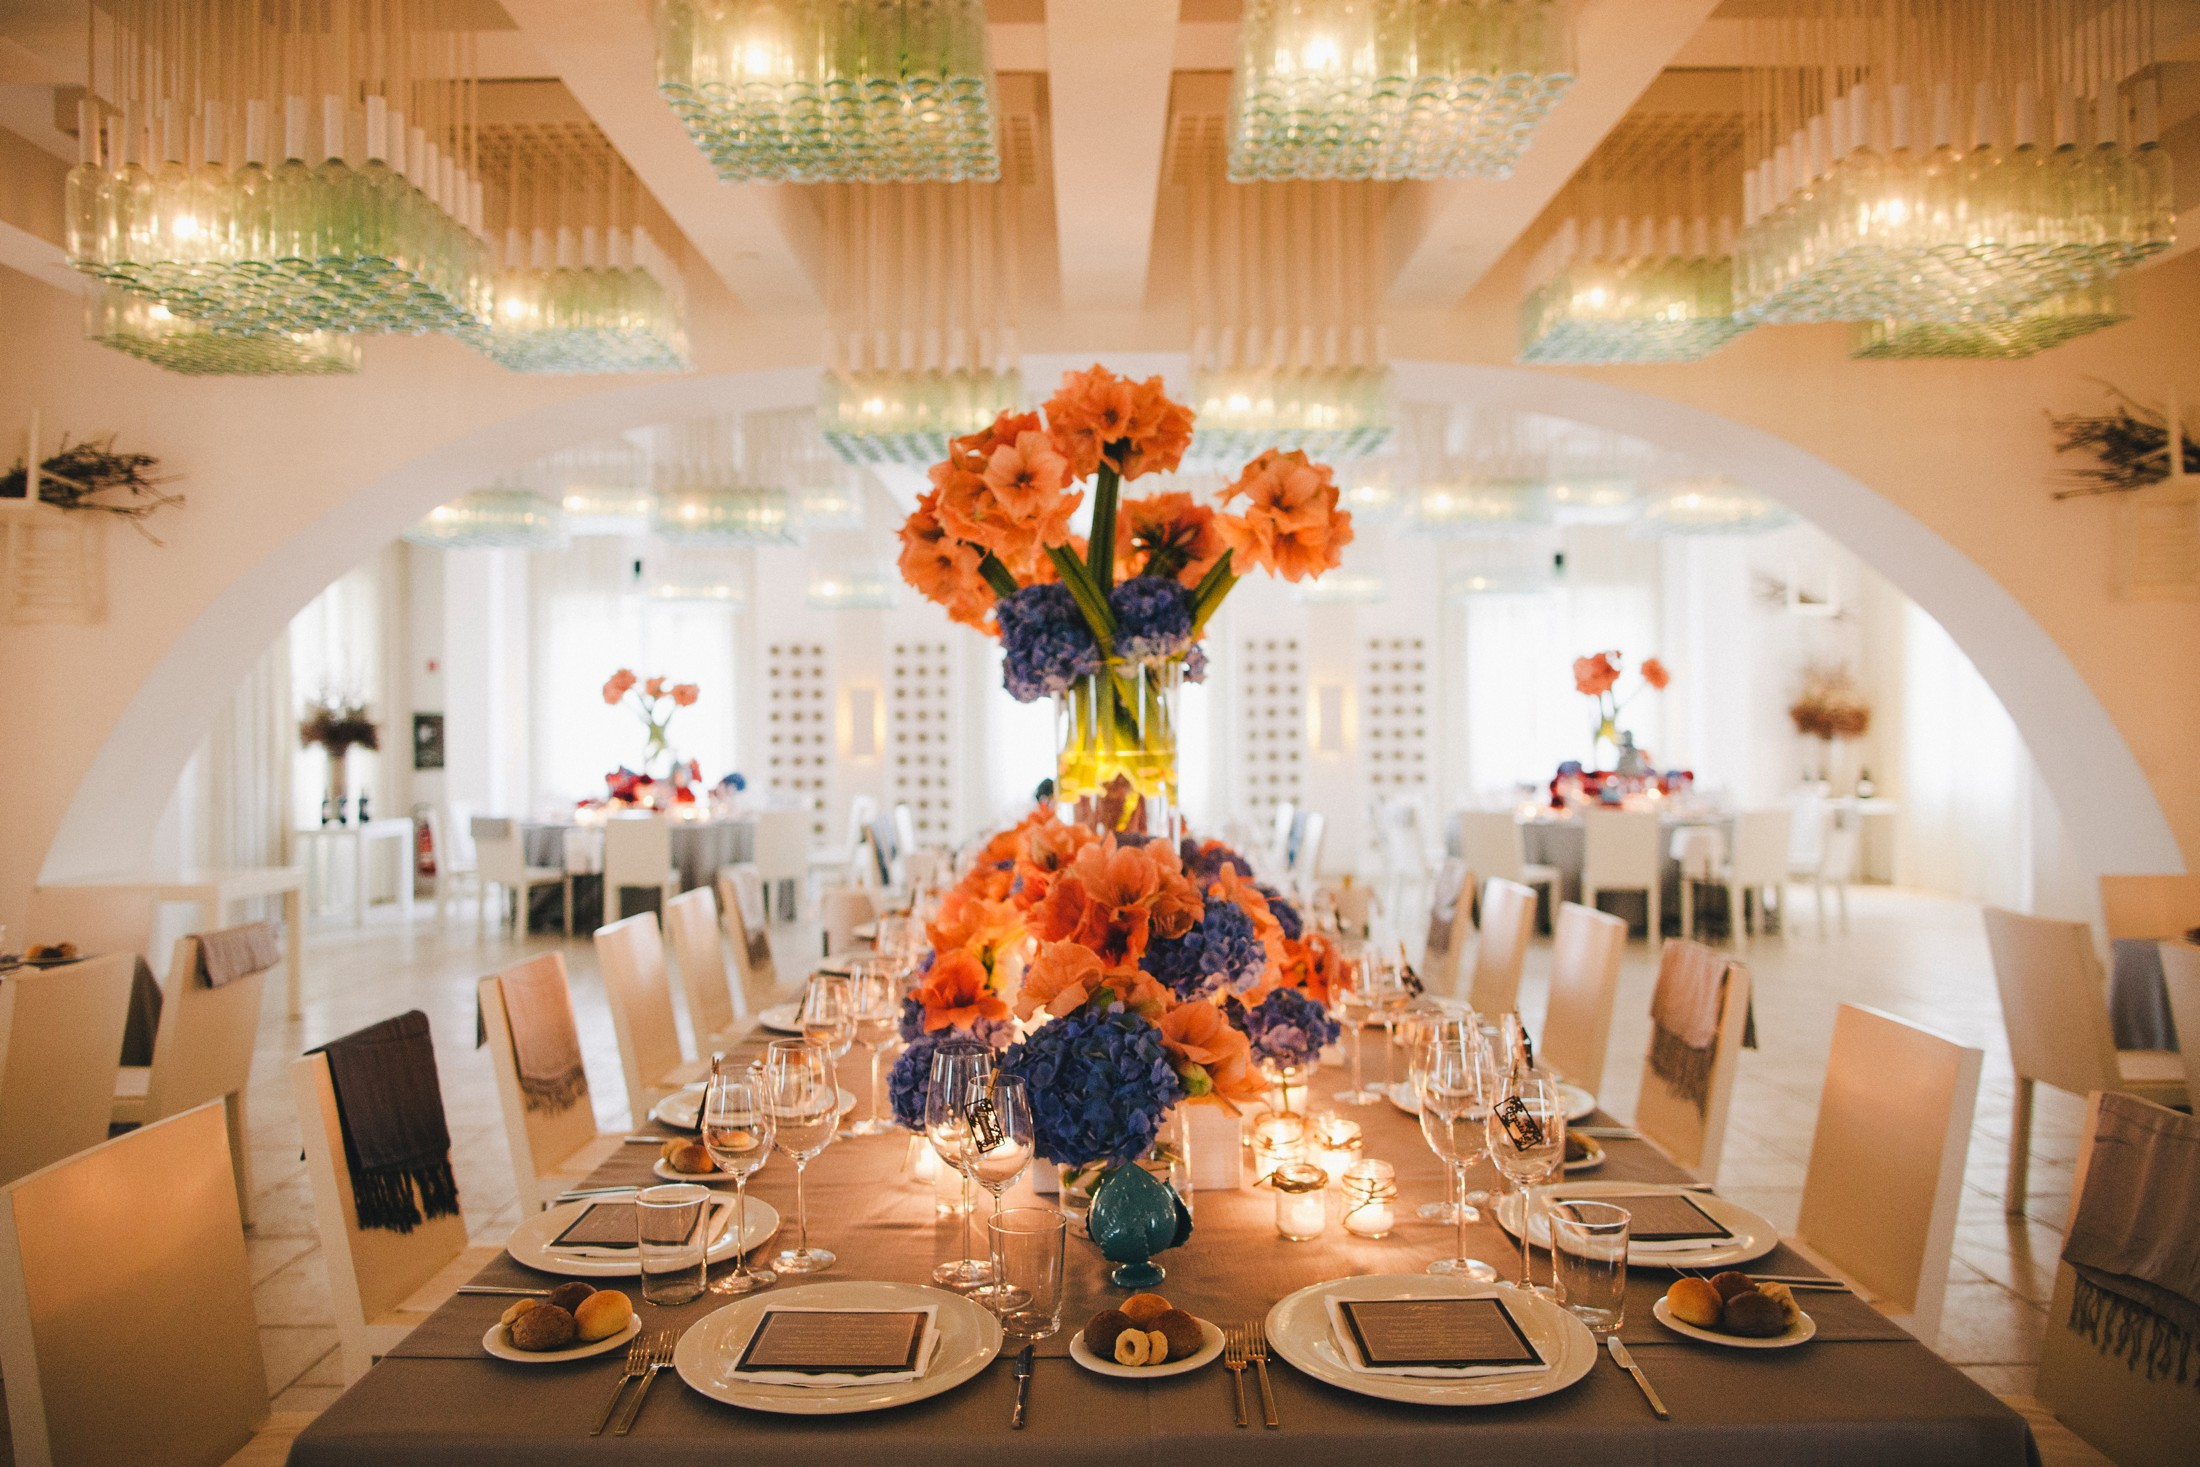 wedding table decor with colorful flowers